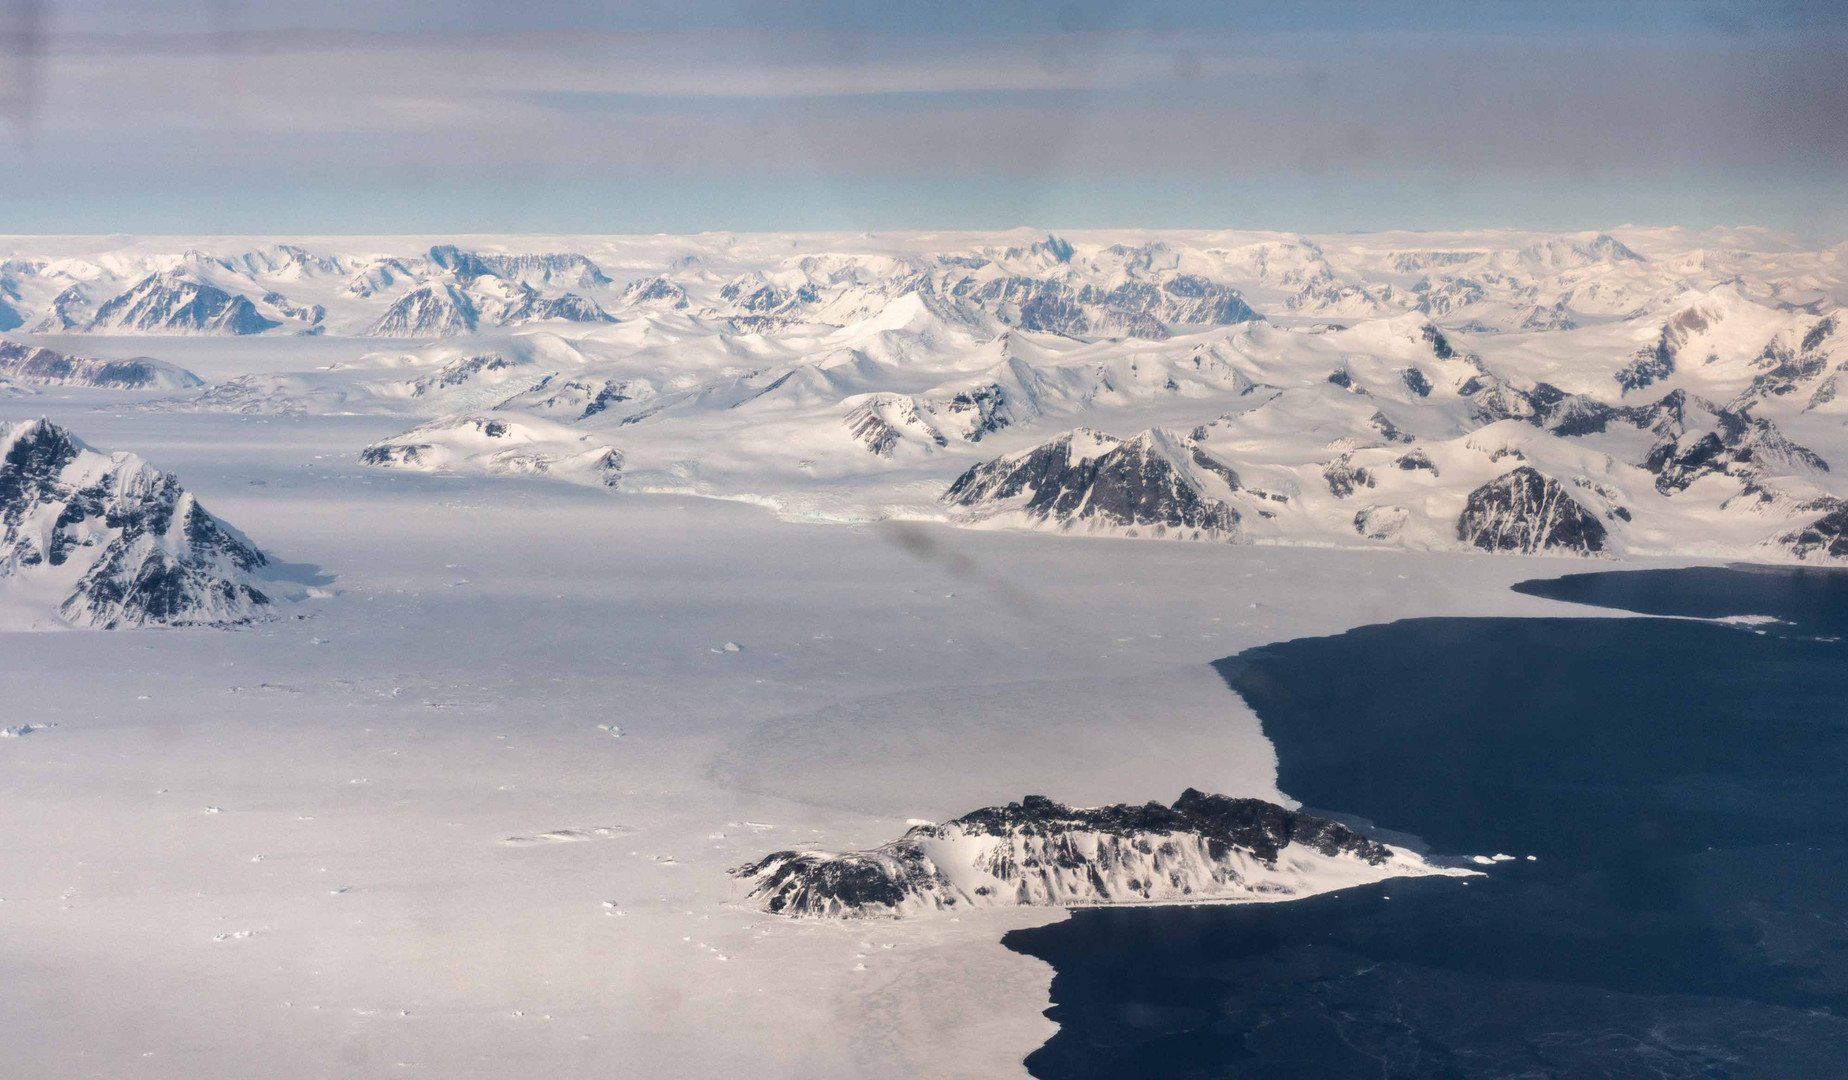 First view of the Antarctic Peninsula